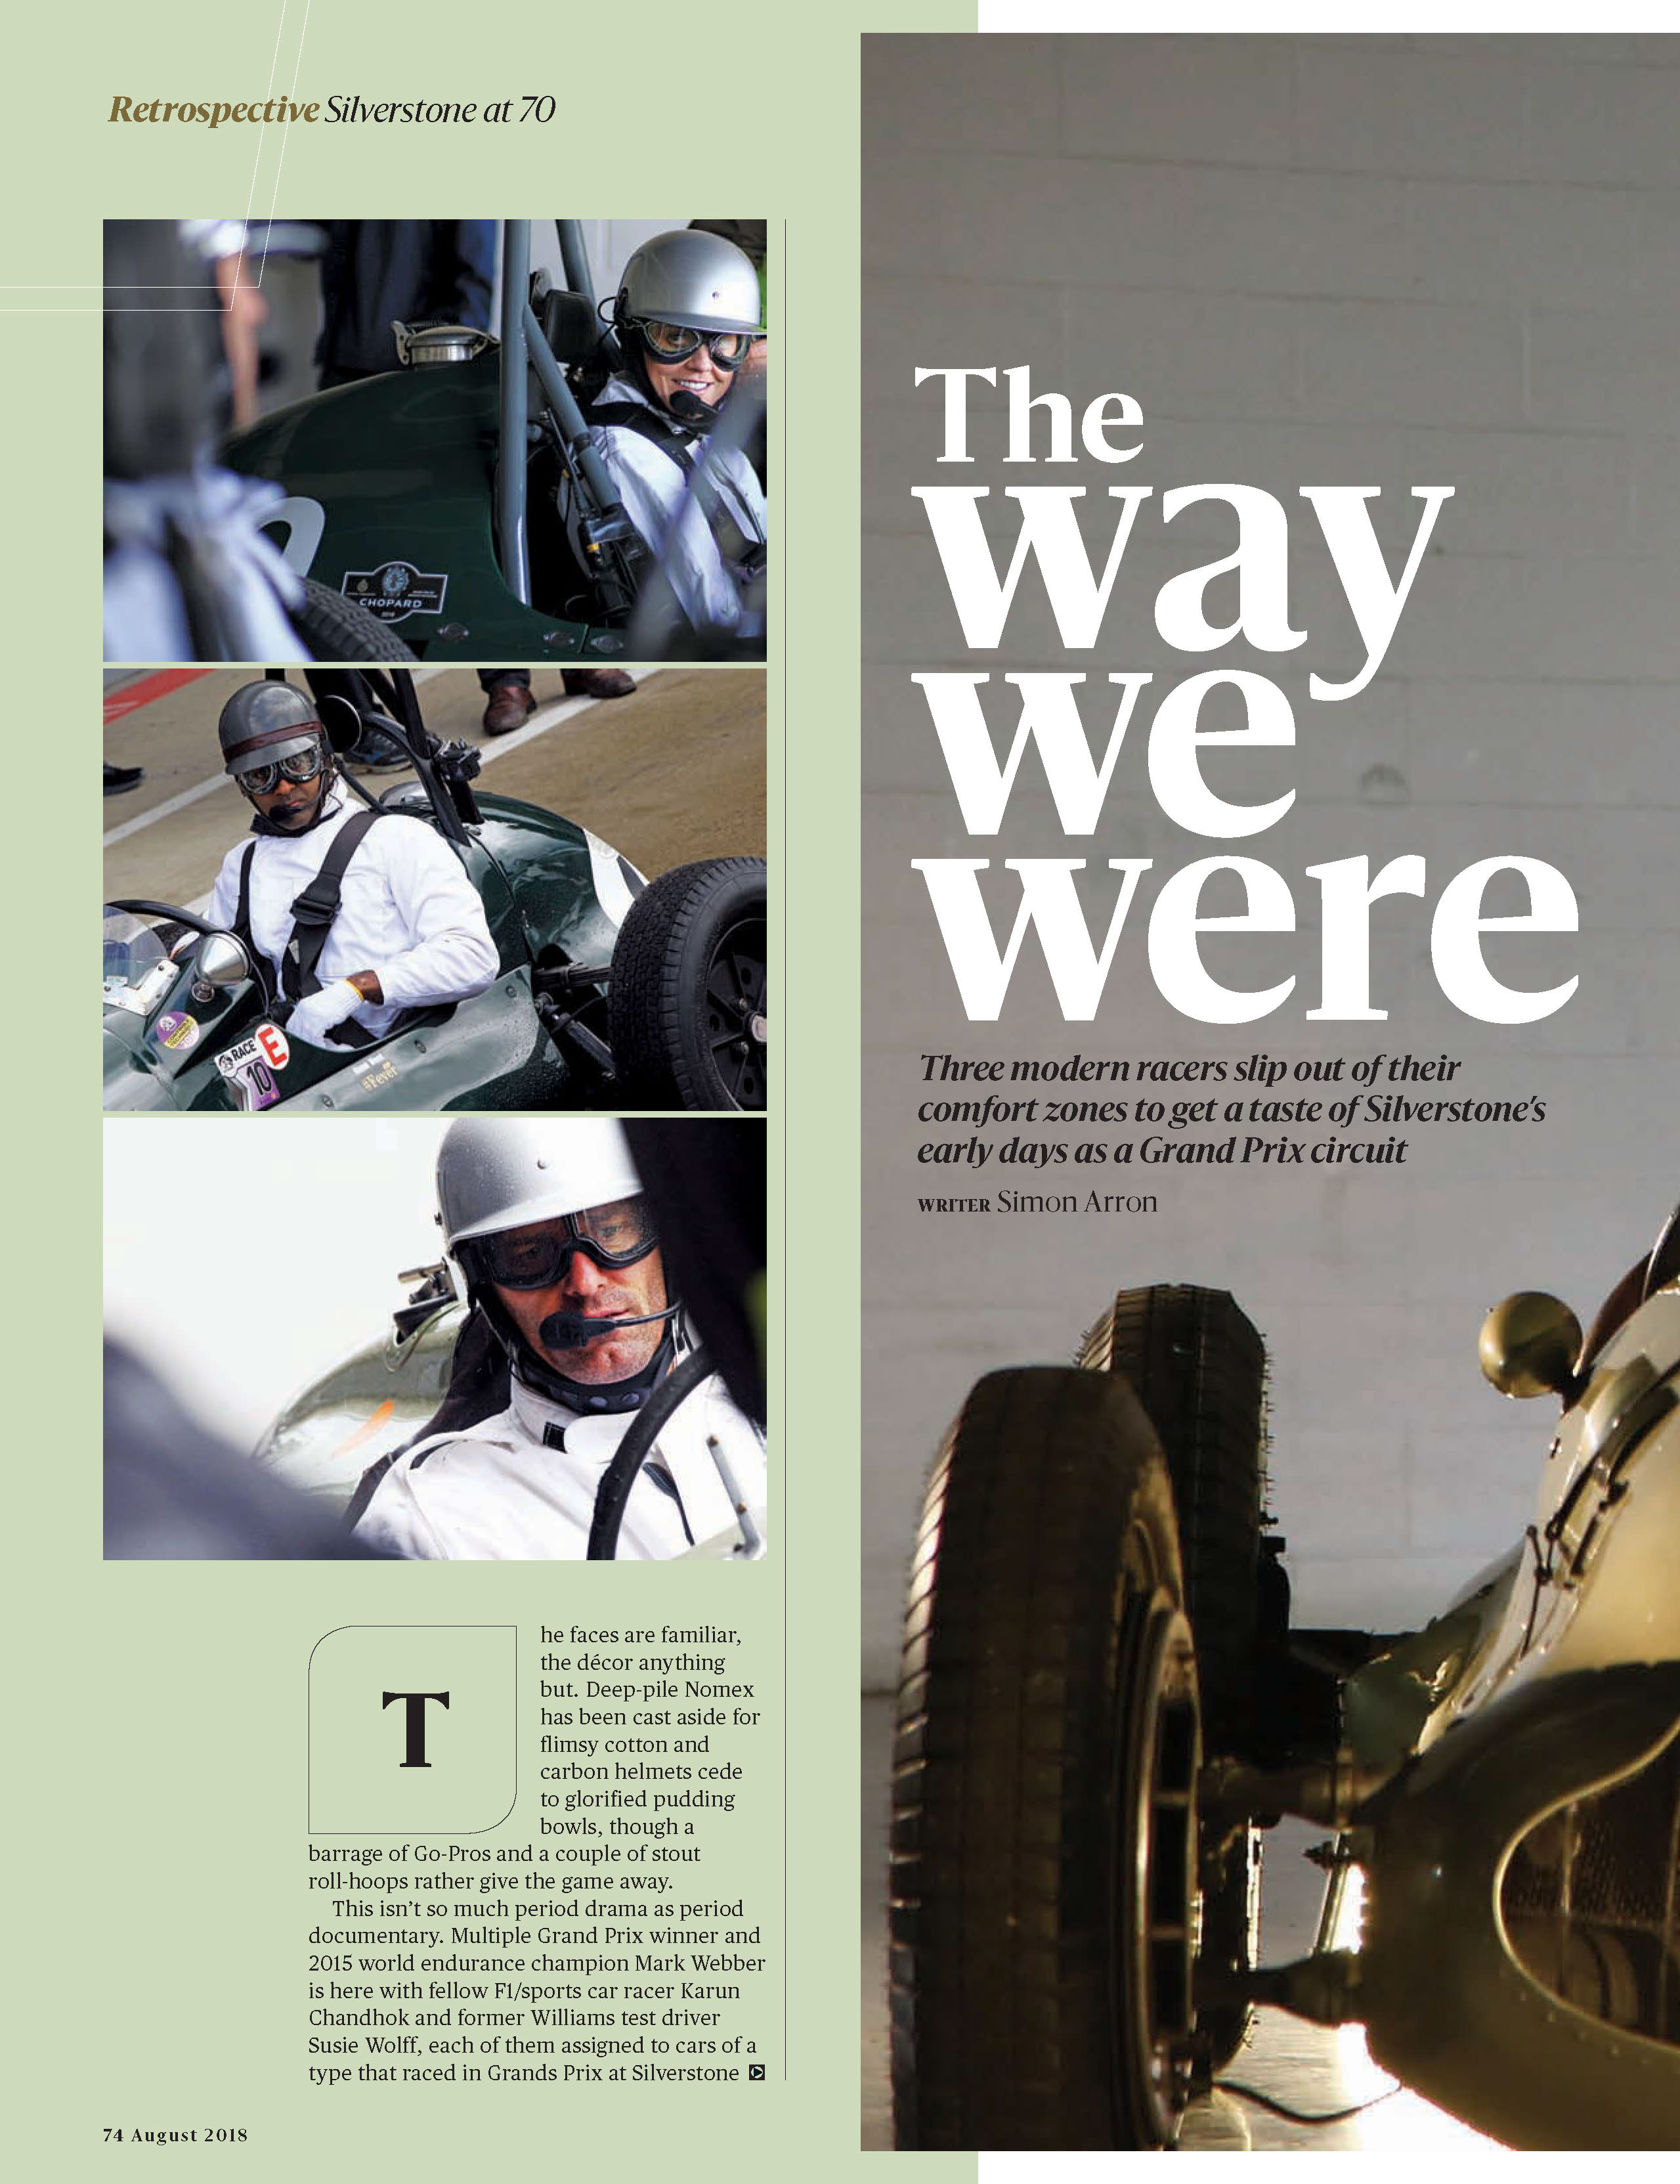 Silverstone at 70: The way we were image